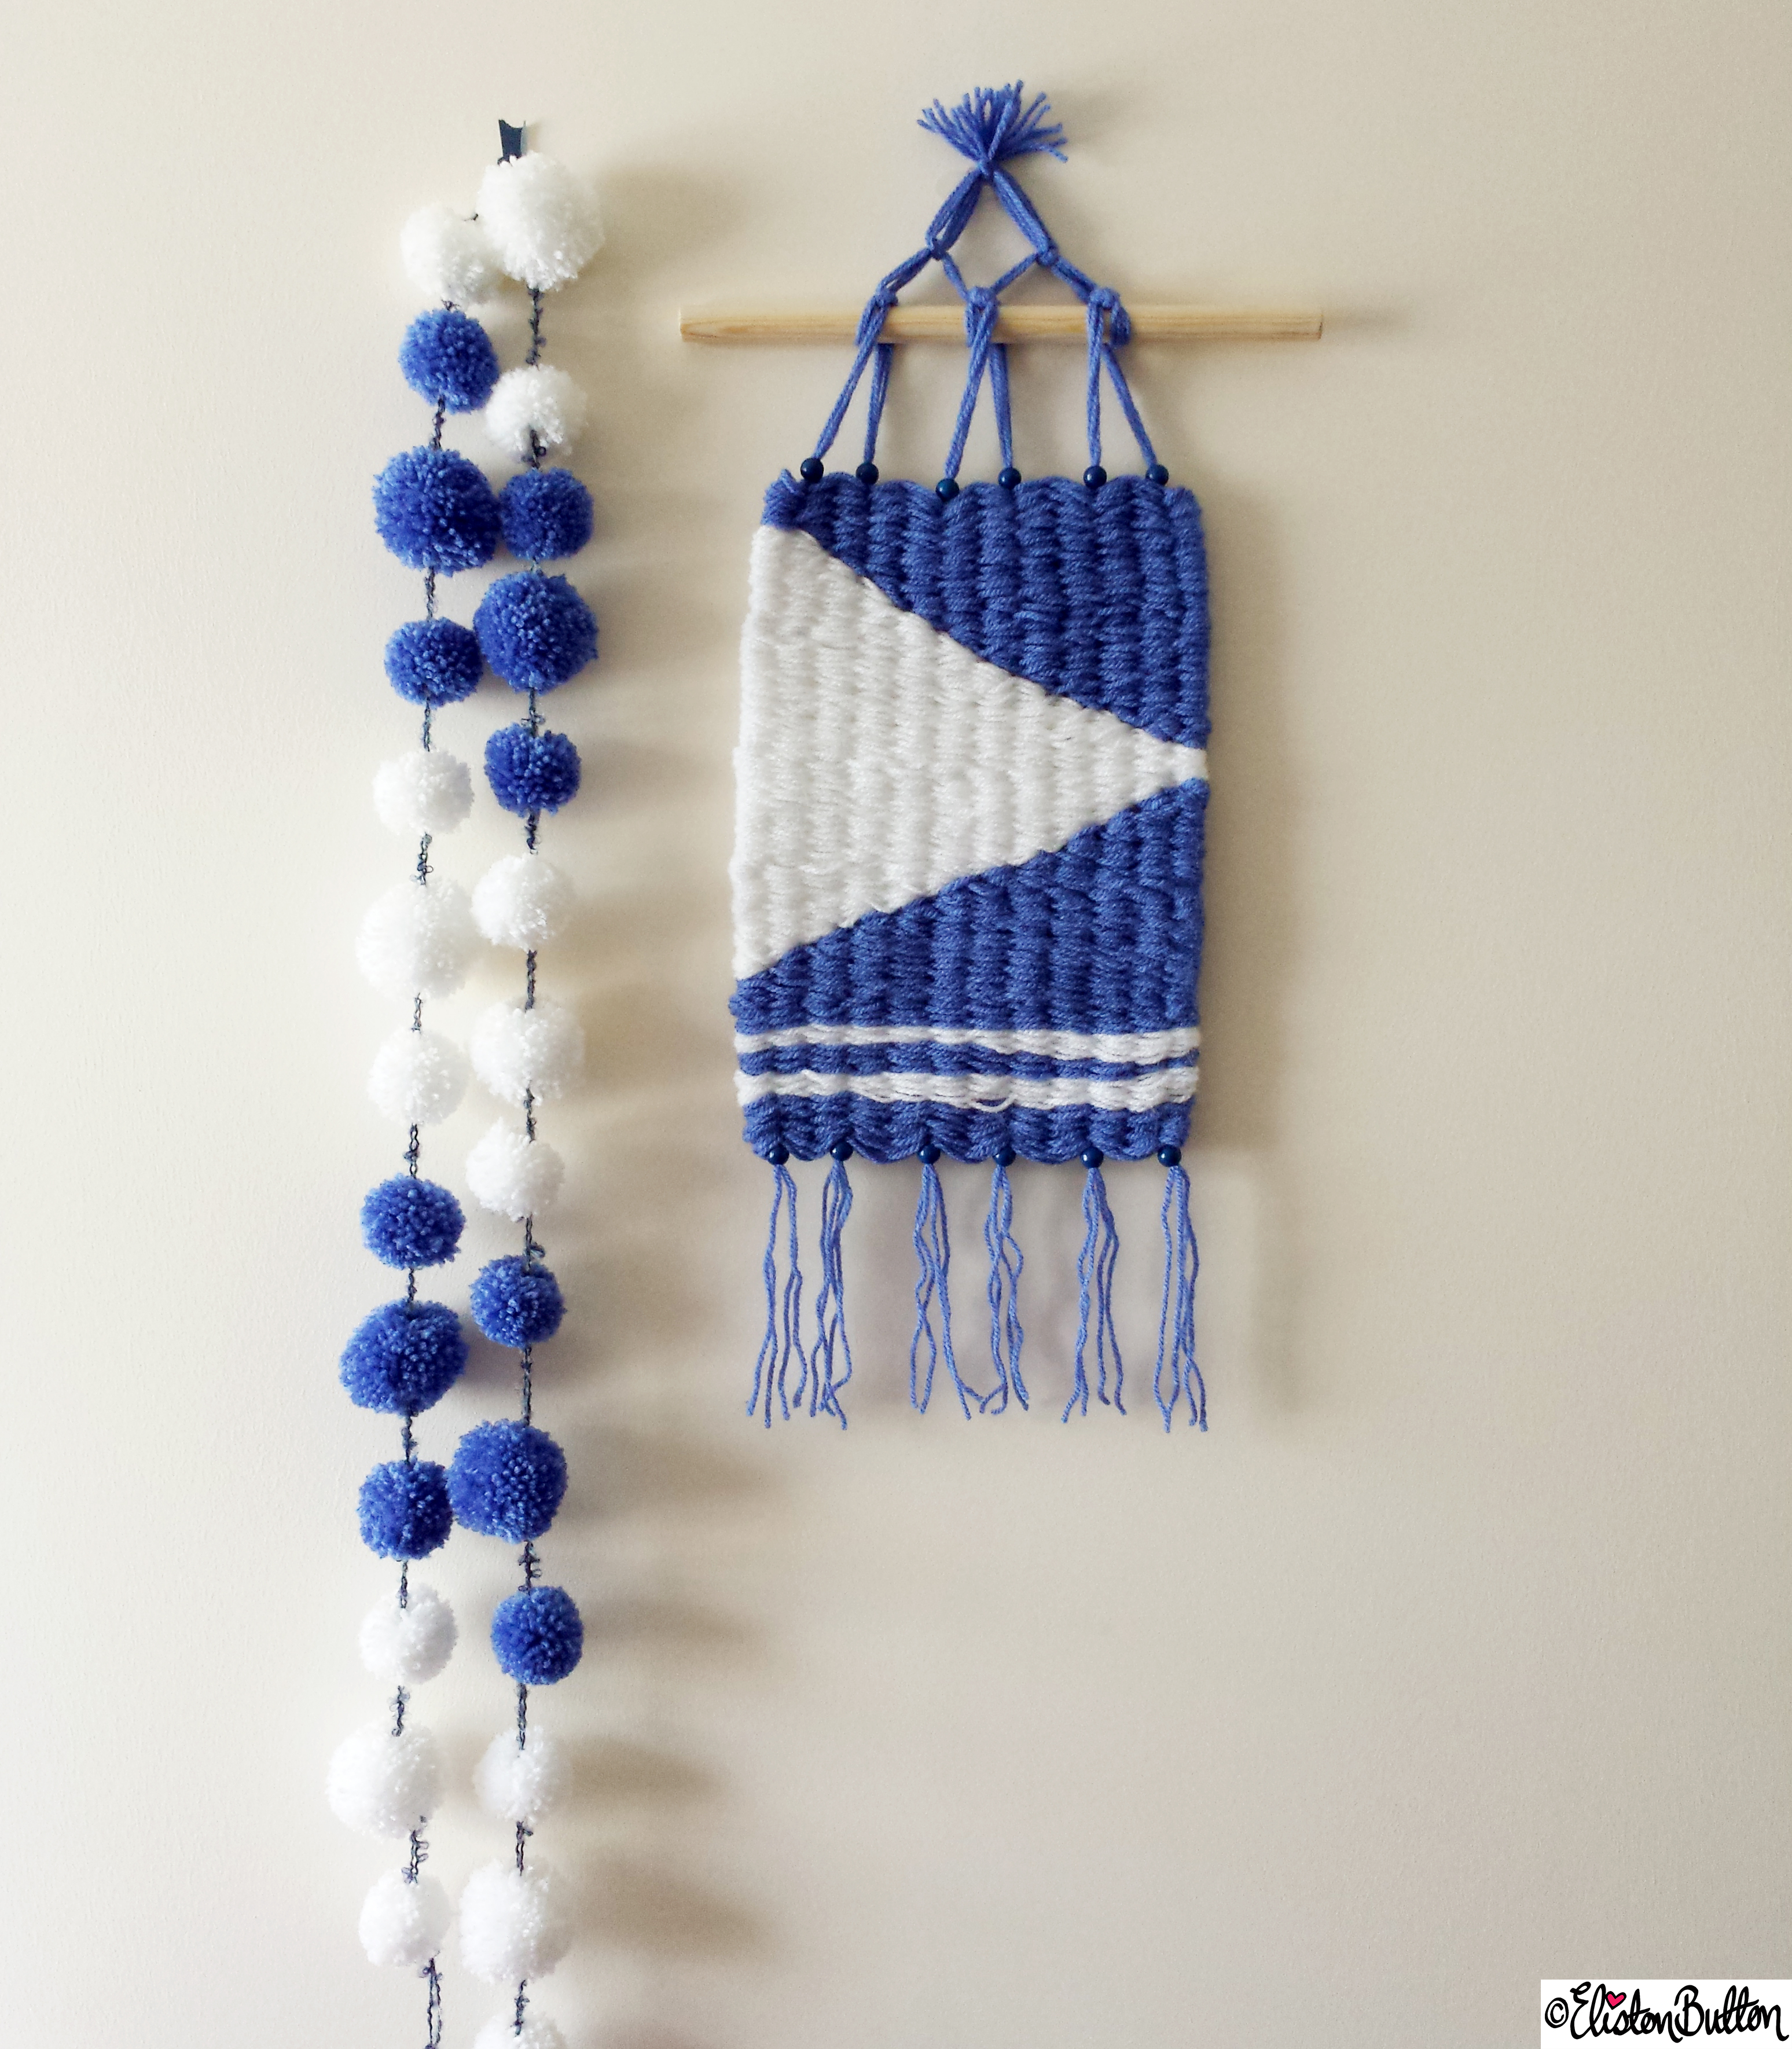 Nautical Inspired Woven Wall Hanging and Pom Pom Garland - Create 28 - No. 7&8 - Woven Wall Hangings at www.elistonbutton.com - Eliston Button - That Crafty Kid – Art, Design, Craft & Adventure.